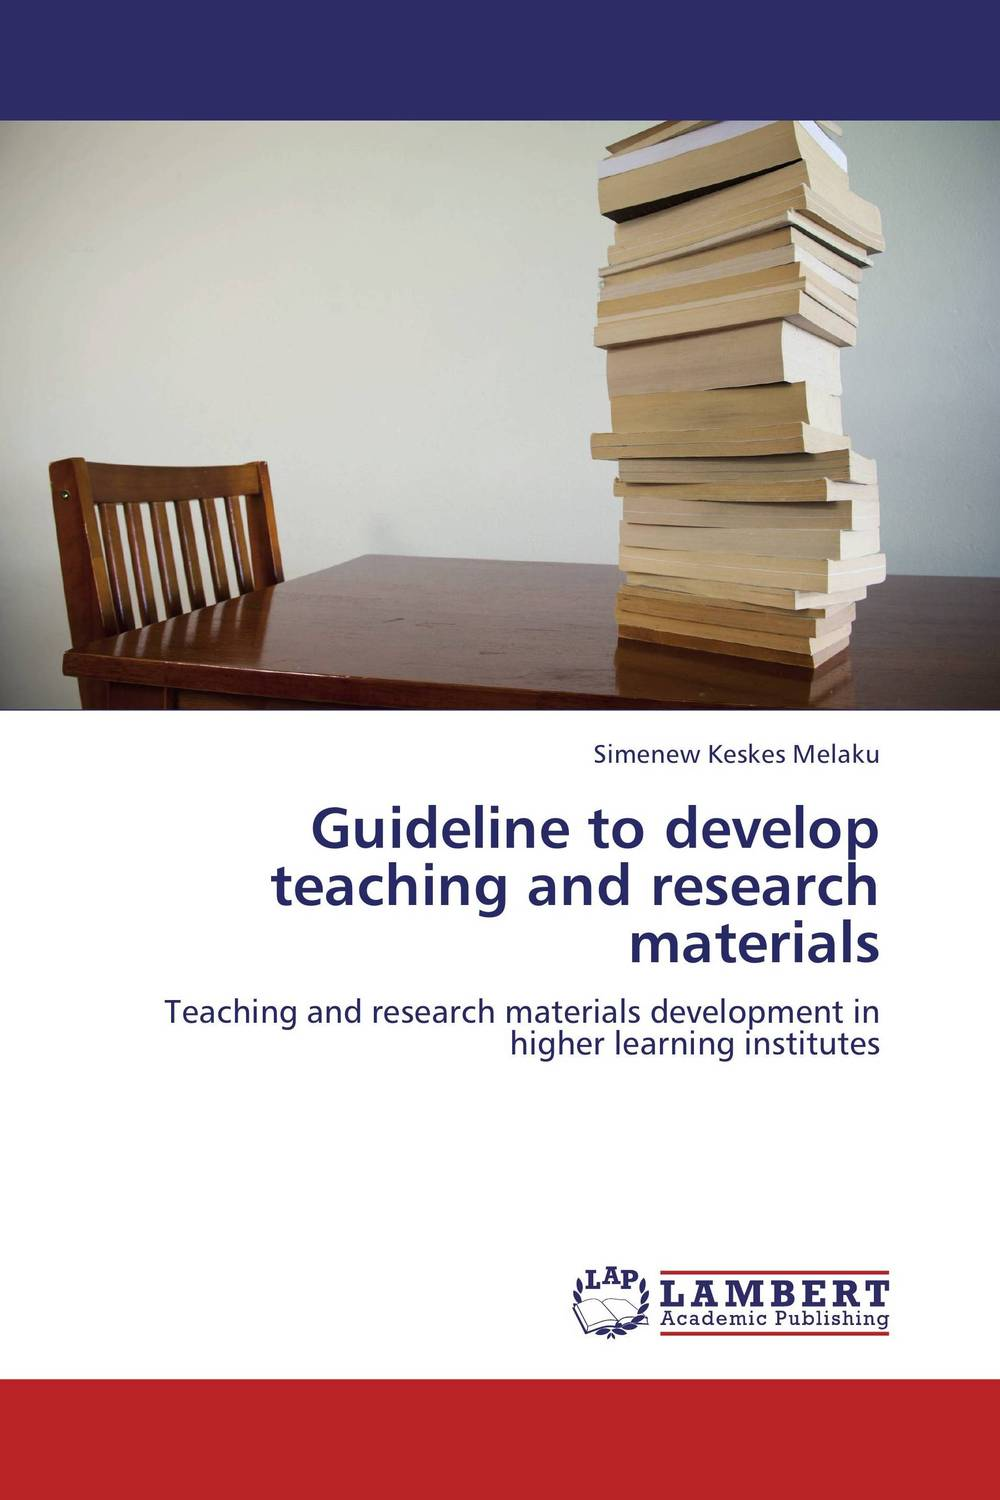 Guideline to develop teaching and research materials